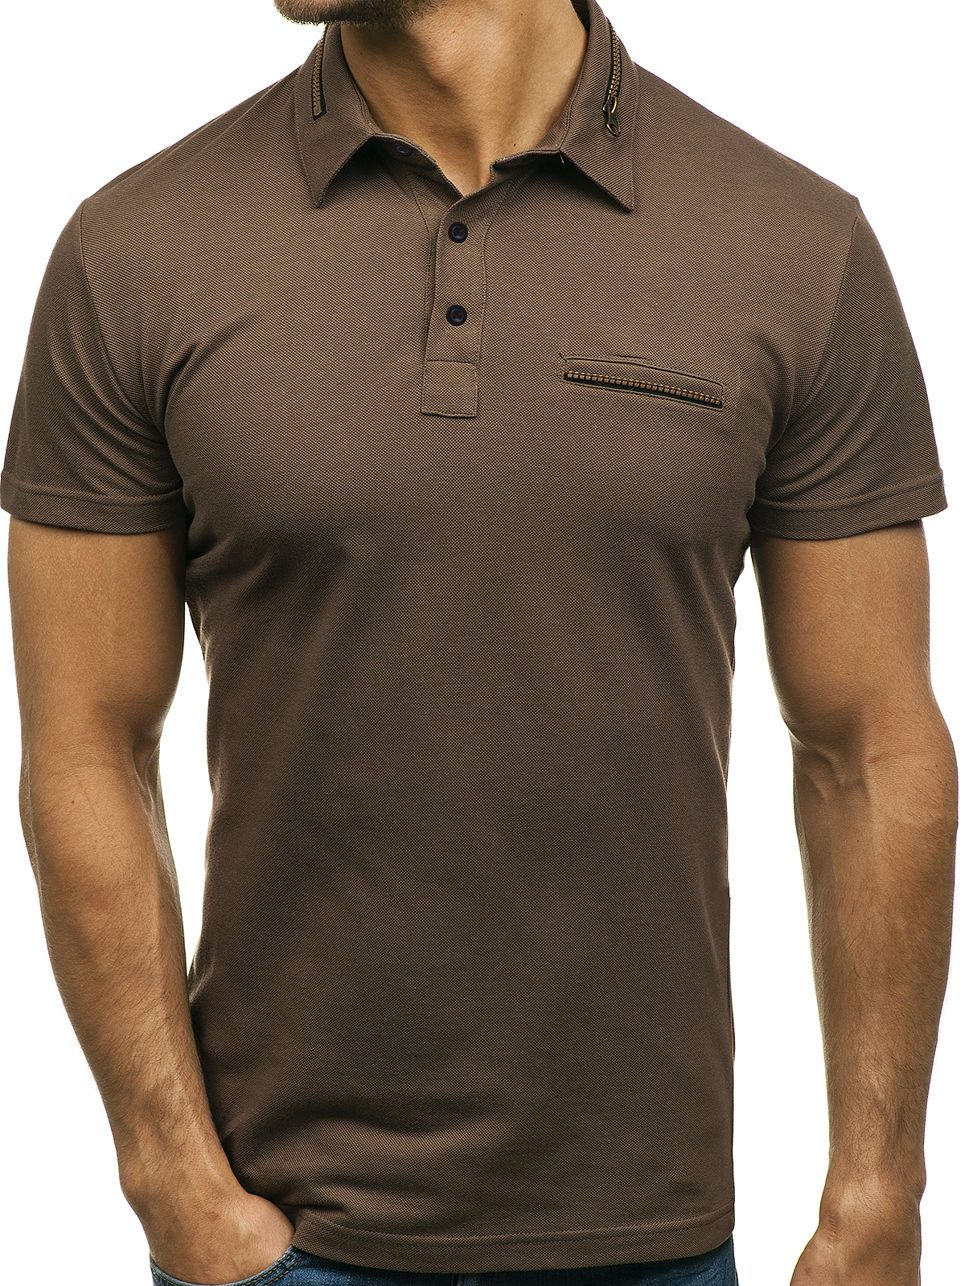 Cheap Polo Buy Directly From China Supplierssummer Collar Men Polo